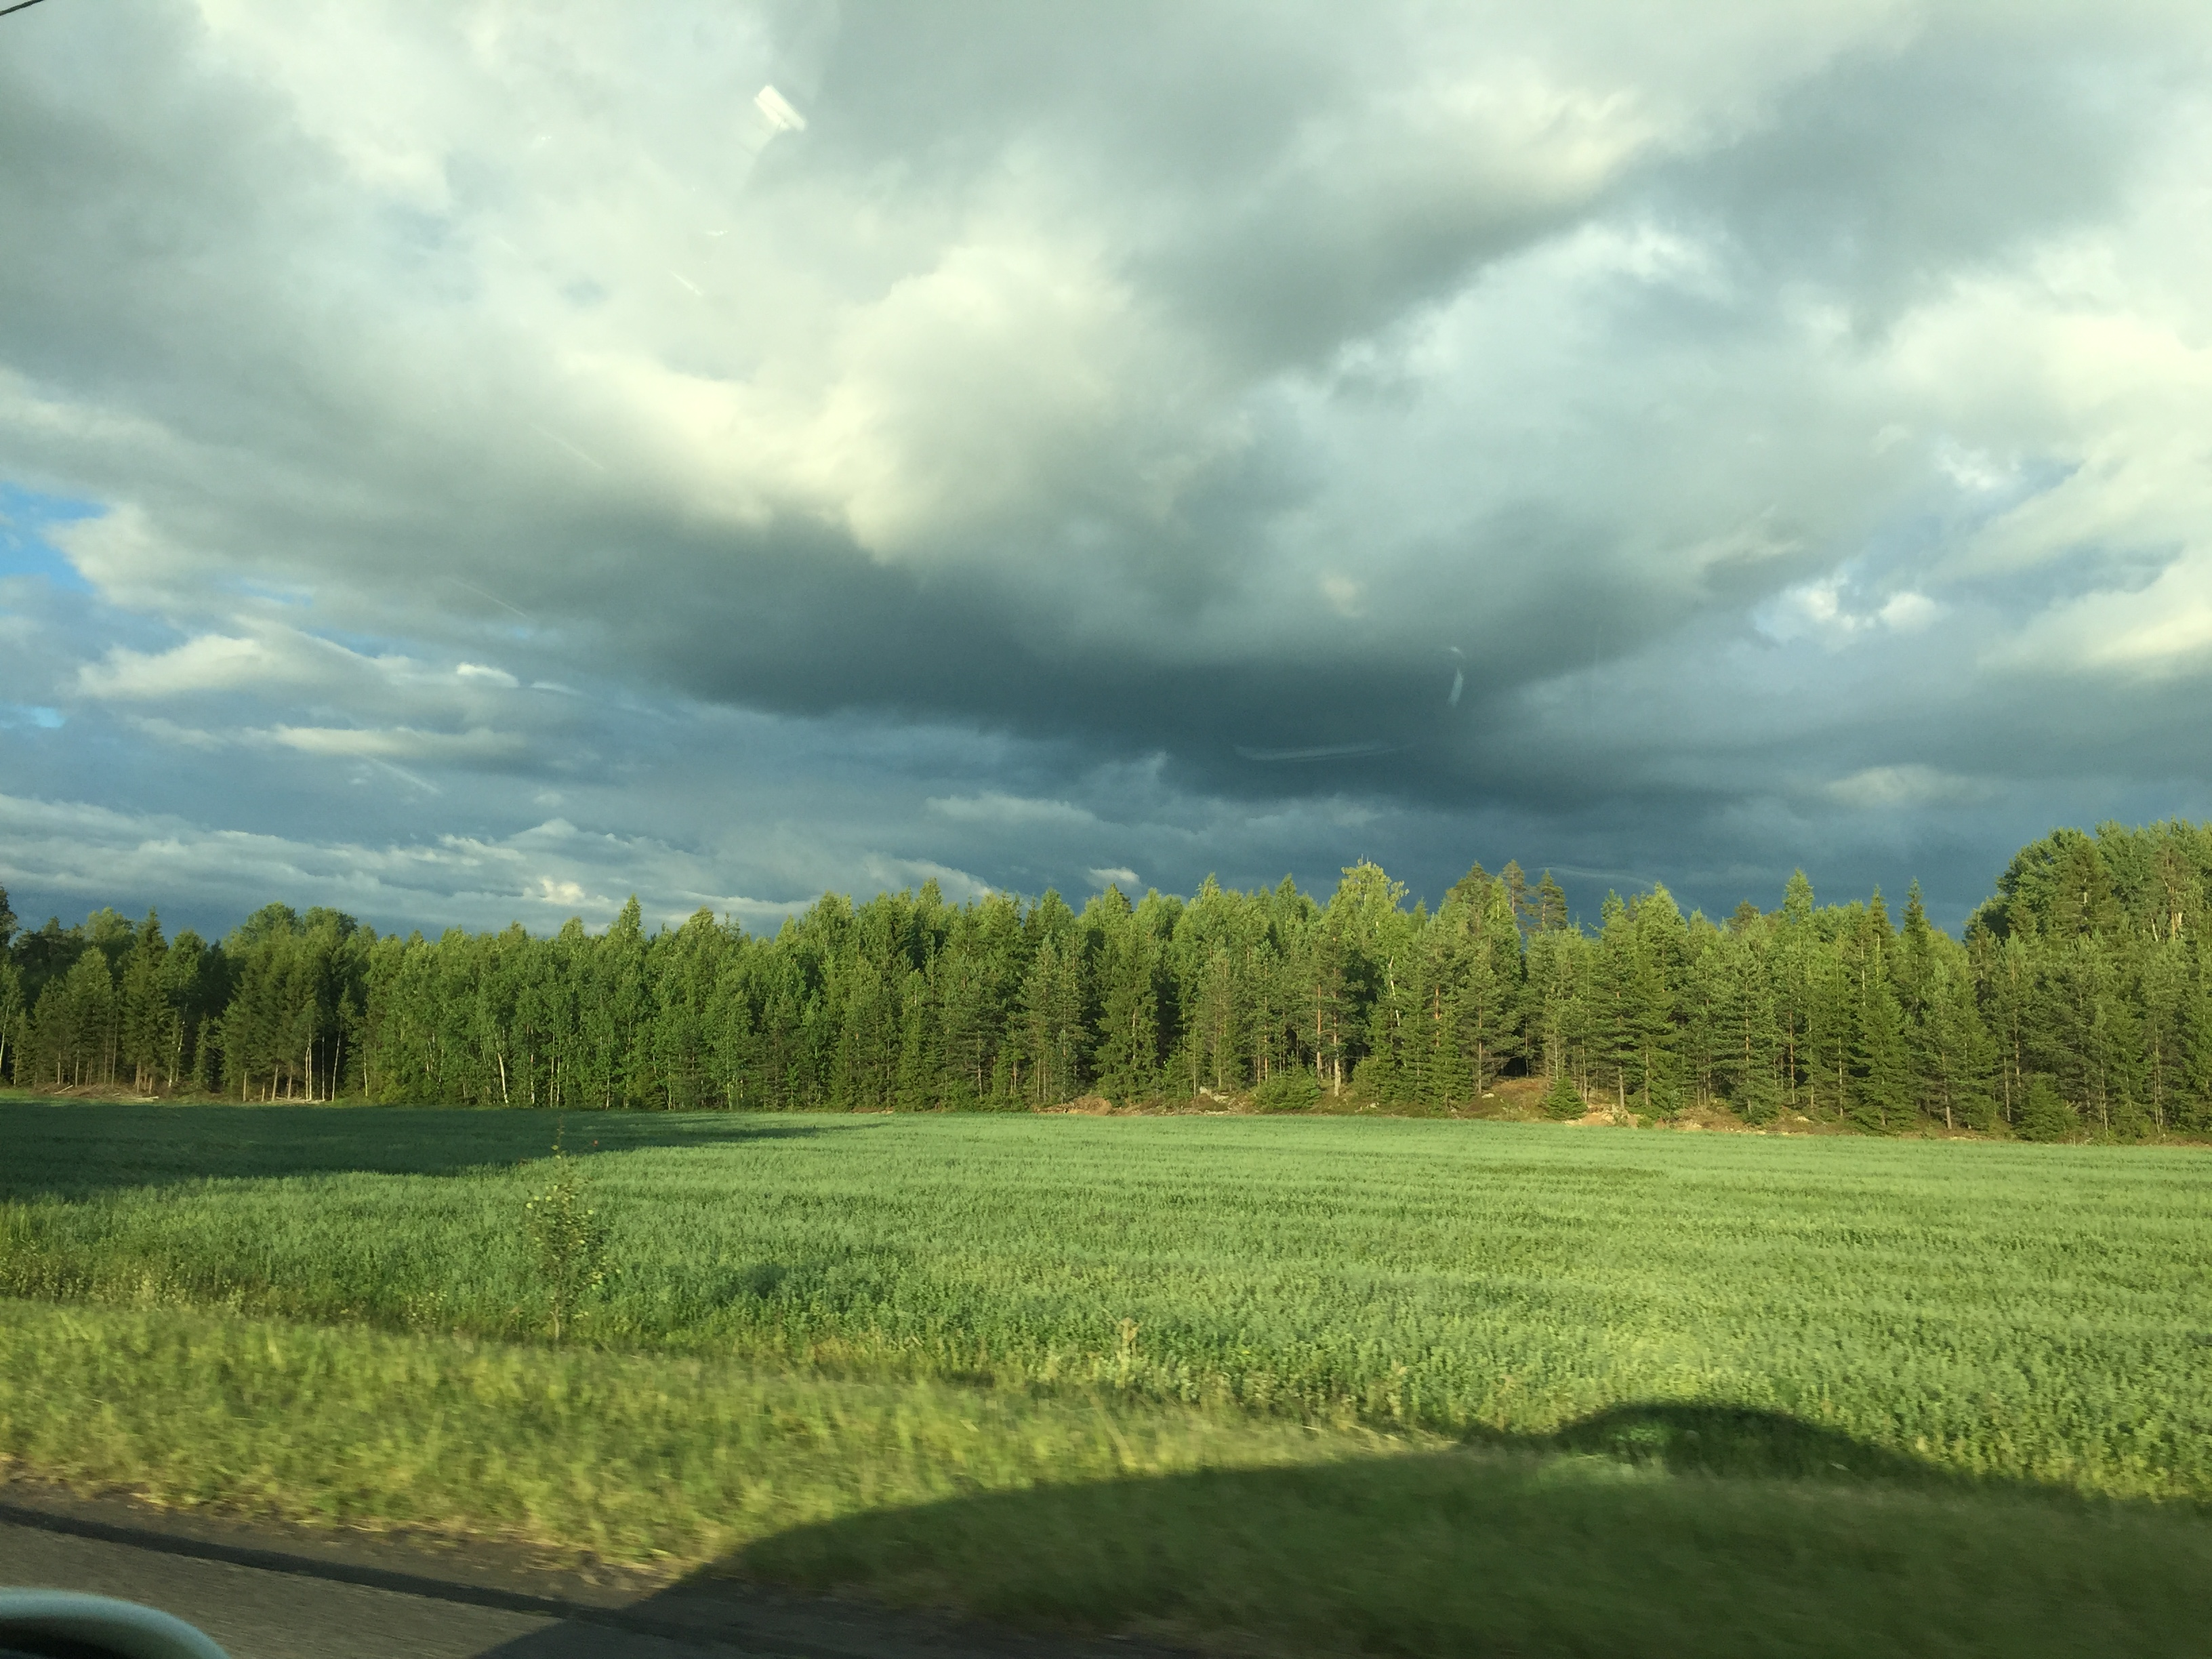 Green fields and forest in Finland